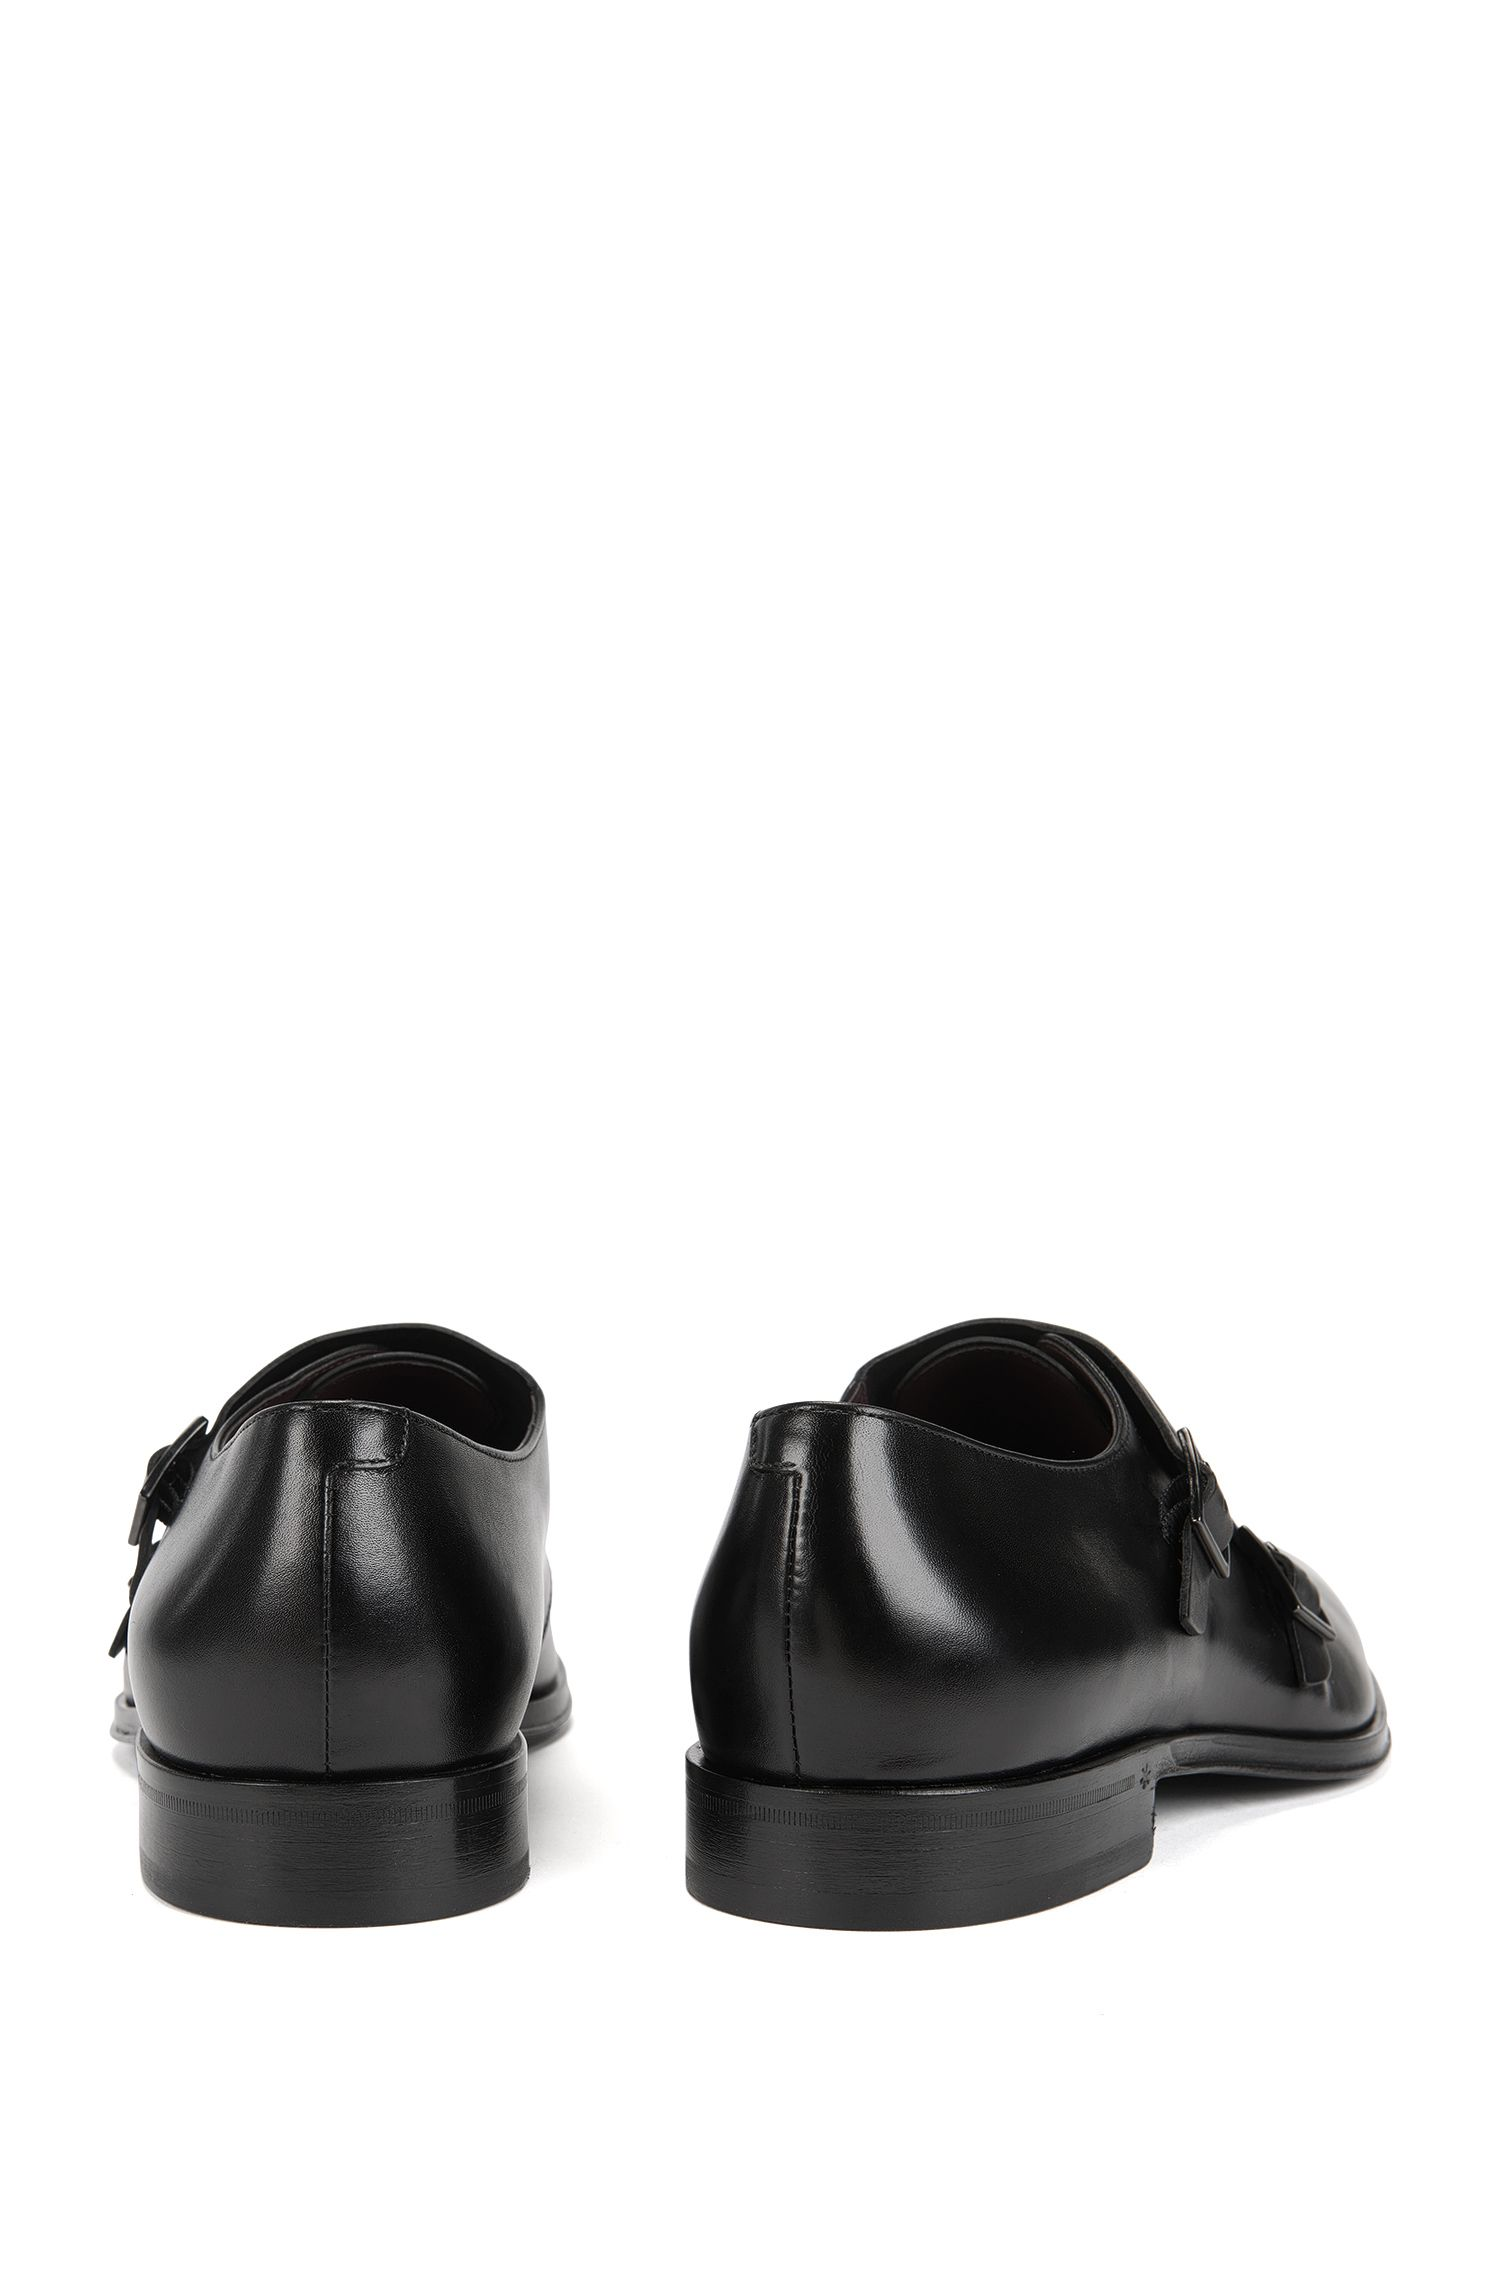 Double-monk shoes in grained leather